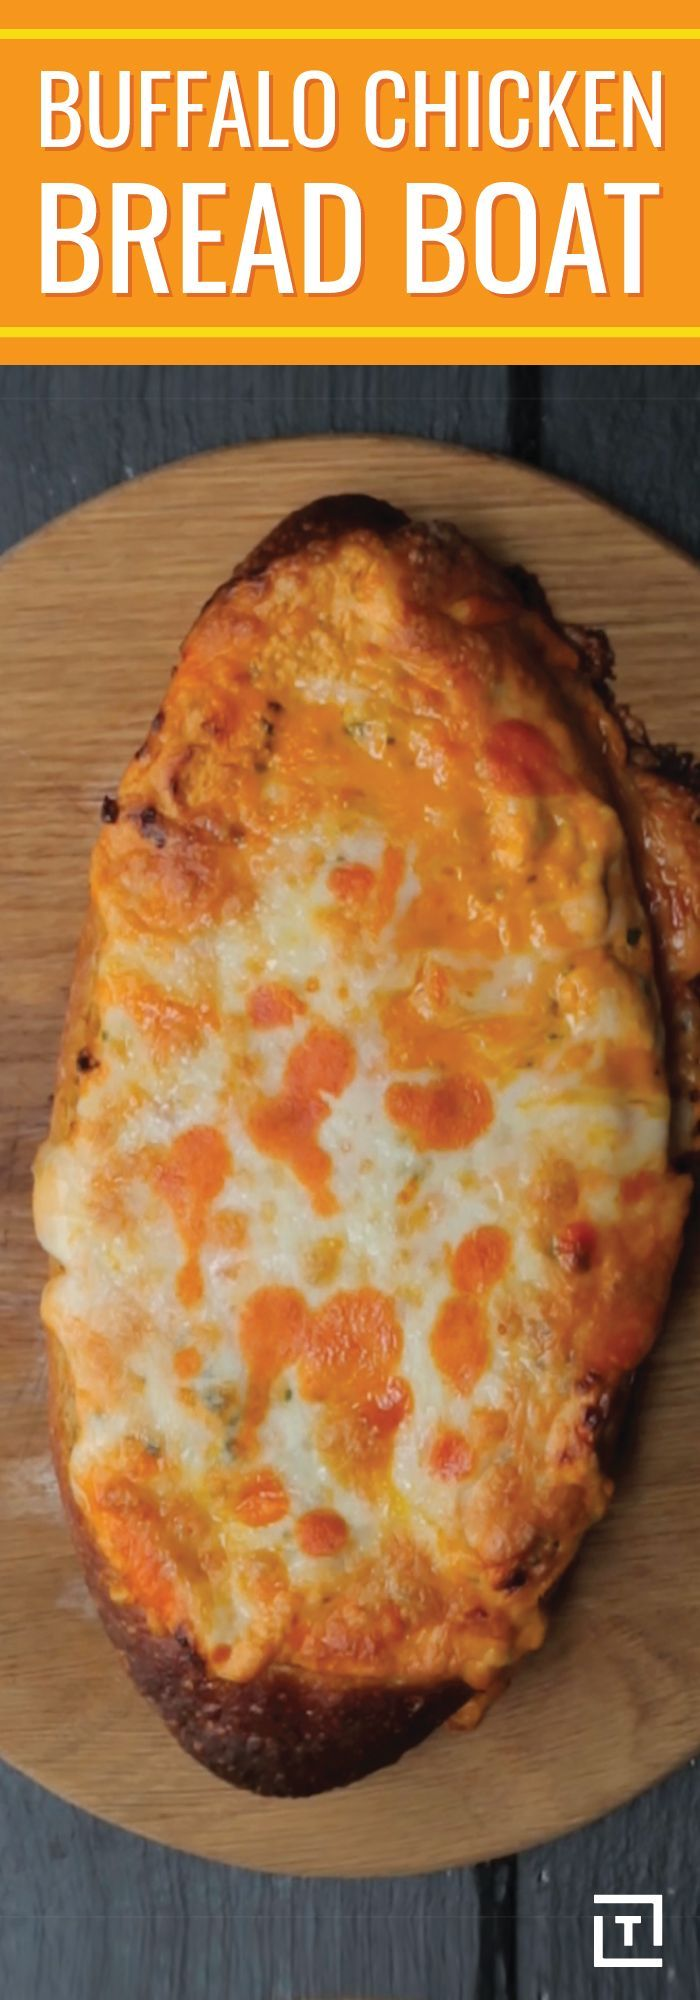 """Since a simple paragraph could never do a piping-hot puddle of scrumdiddlyumptious Buffalo chicken, placed inside a """"boat loaf,"""" justice, we have to resort to the most elegant form of poetry: the haiku.  Buffalo chicken The majesty of the gods Now, inside of bread"""